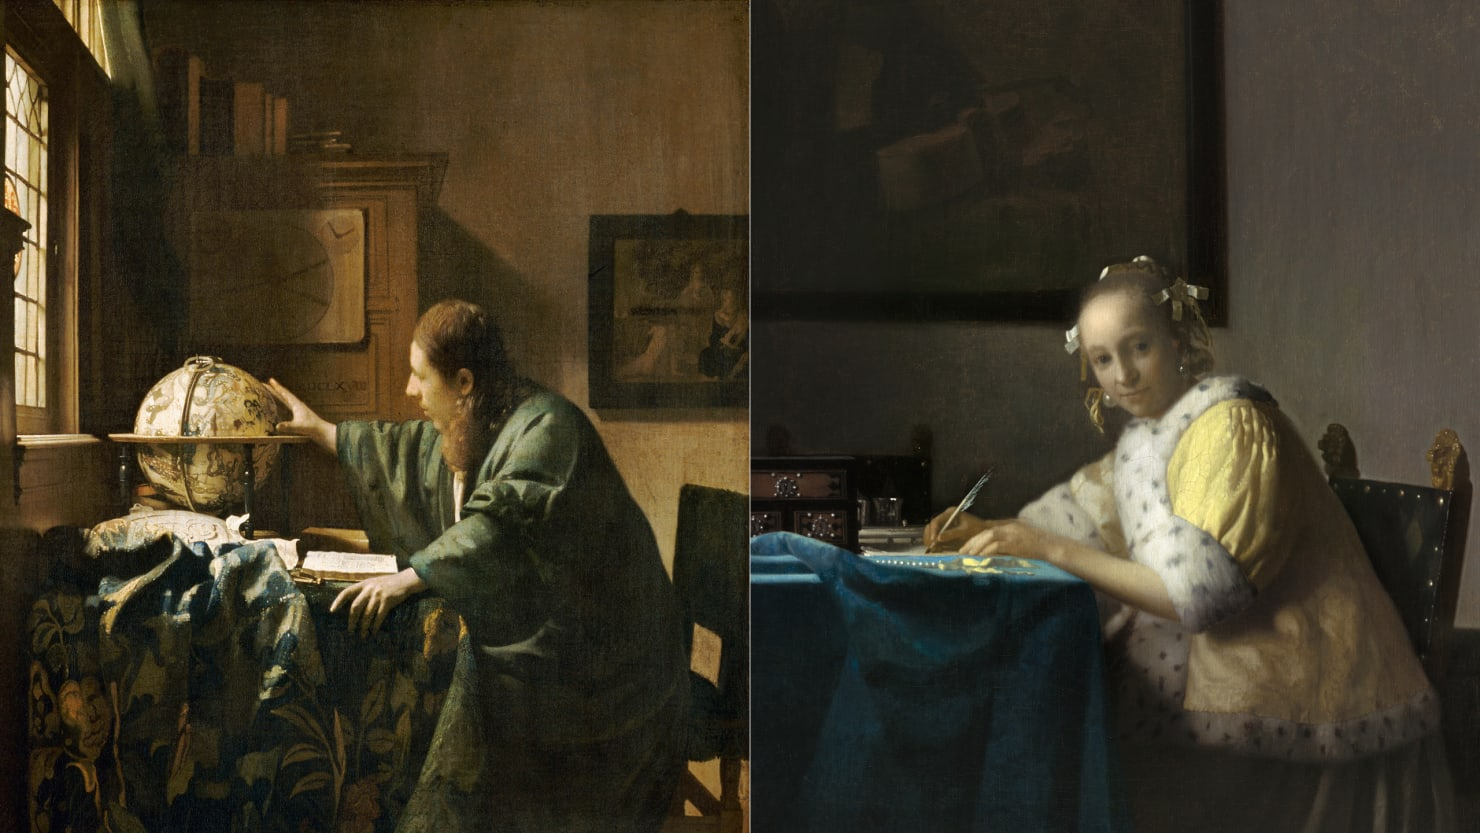 D Painting Exhibition : The dutch masters are back blockbuster vermeer exhibition